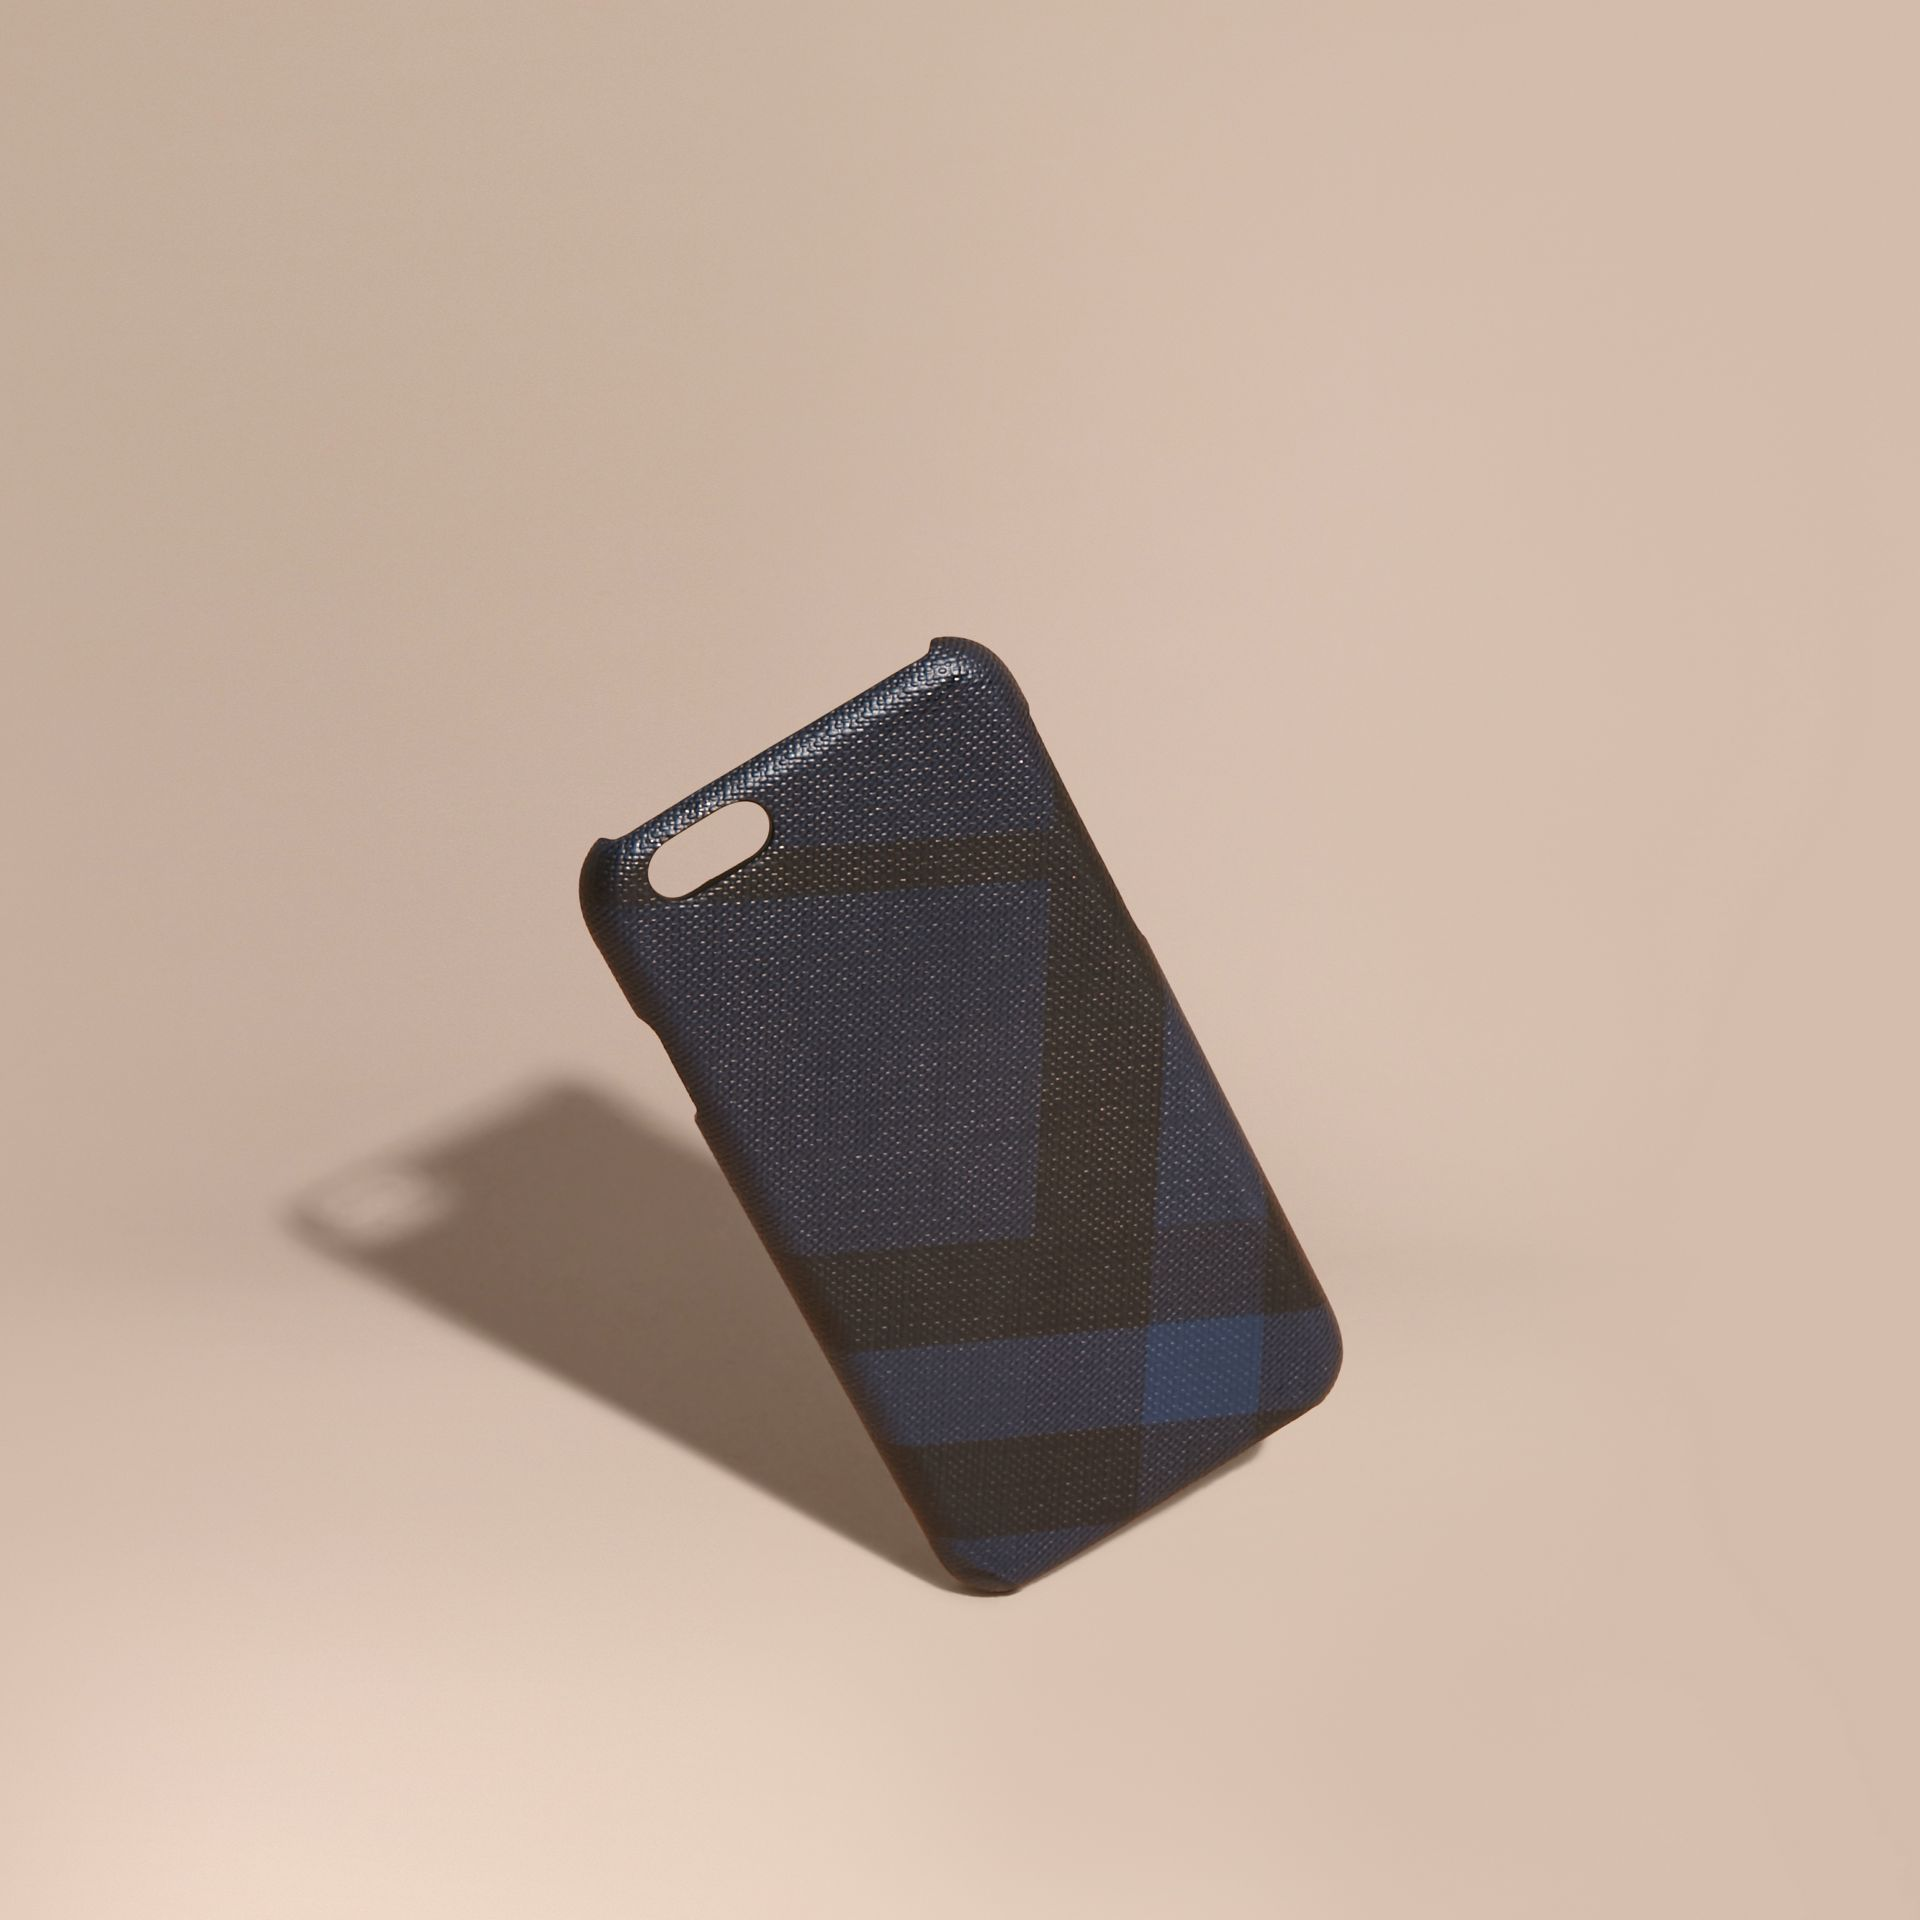 iPhone 7-Etui in London Check (Marineblau/schwarz) - Damen | Burberry - Galerie-Bild 1